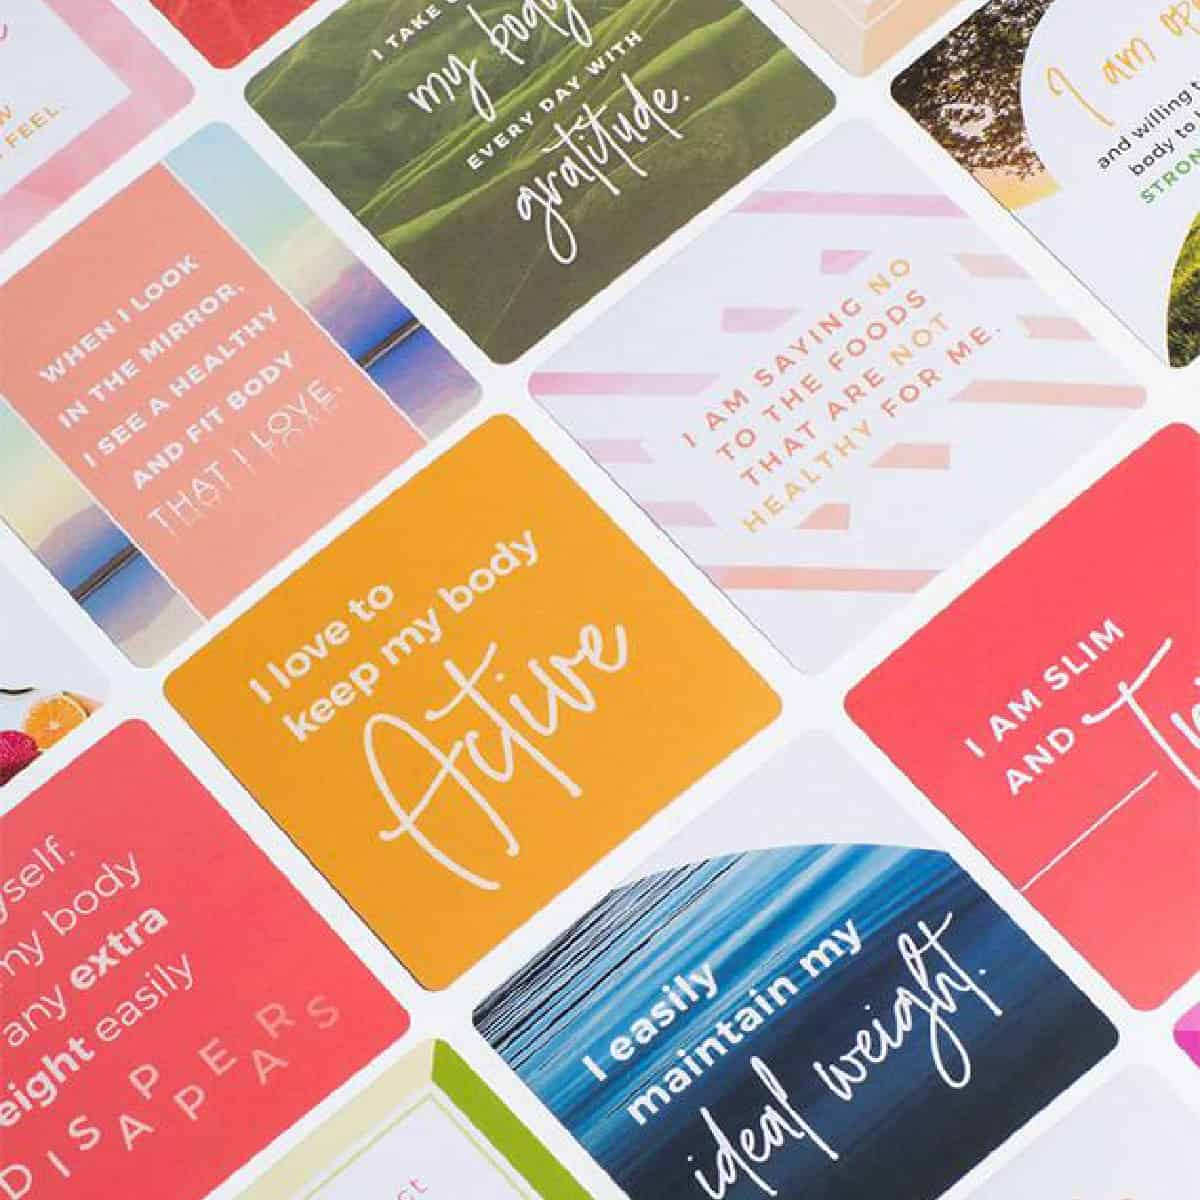 Weight loss affirmation cards up close